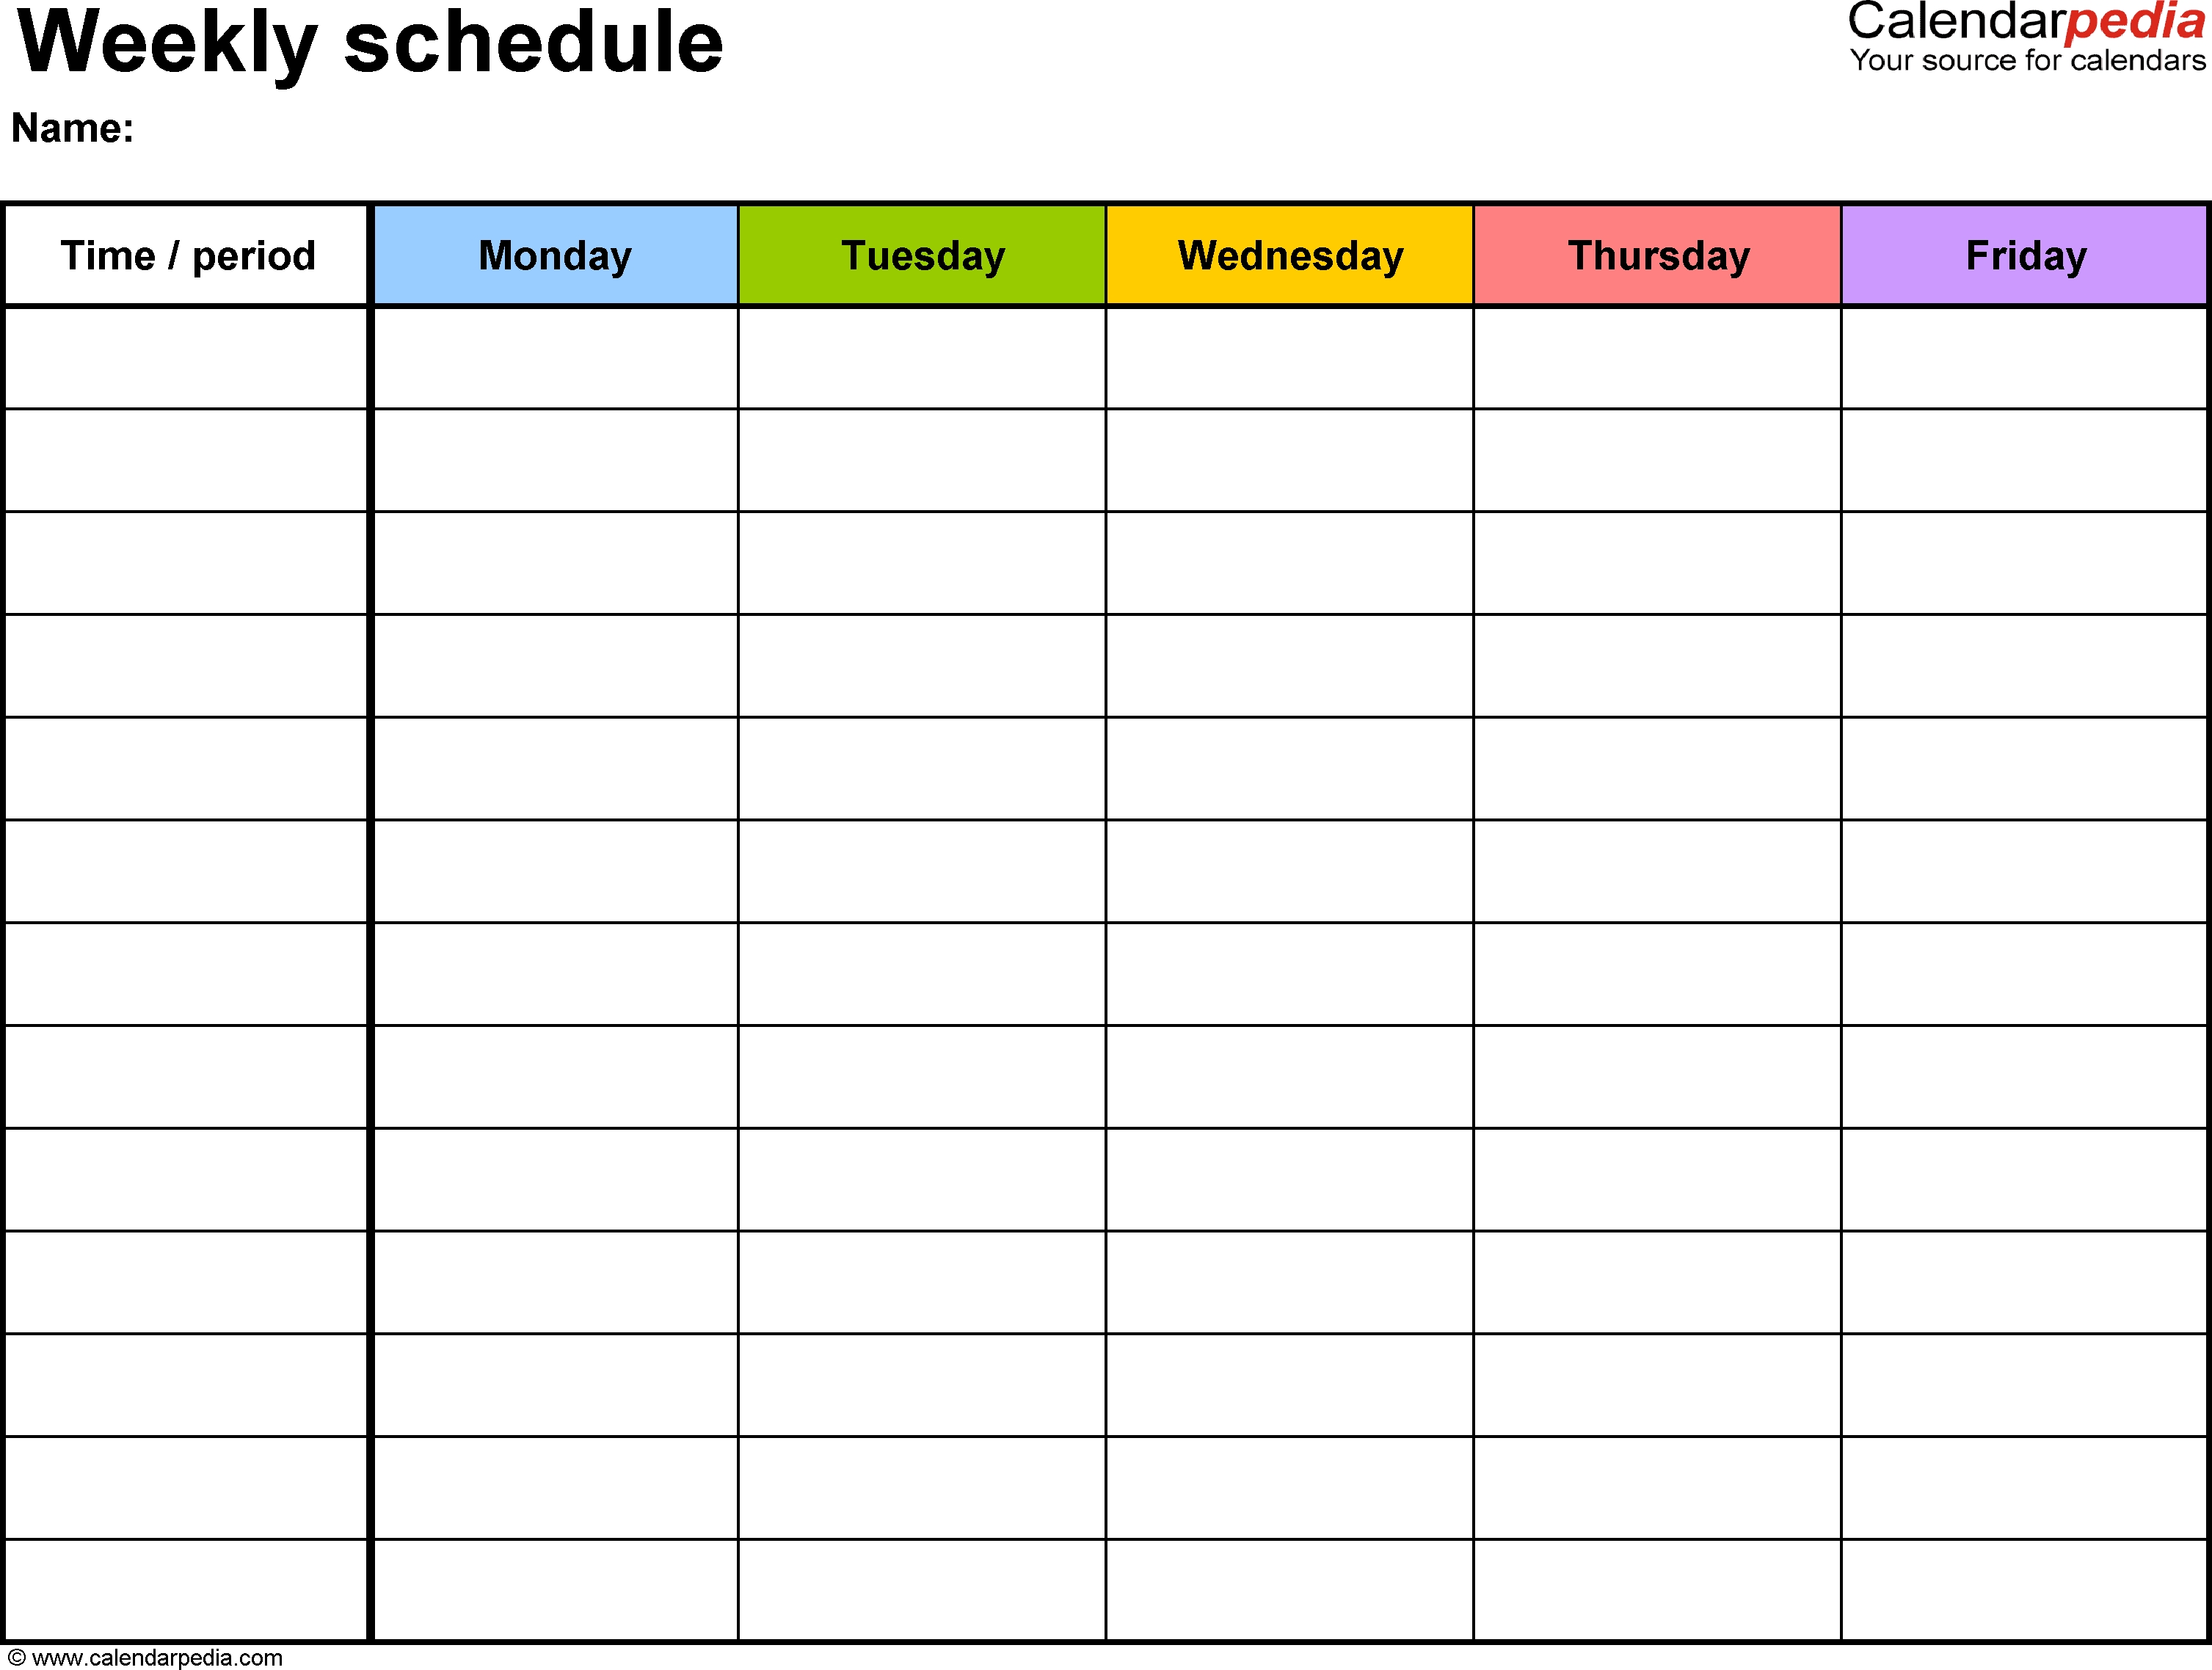 Free Weekly Schedule Templates For Excel - 18 Templates in Excel Day Planner Template Free